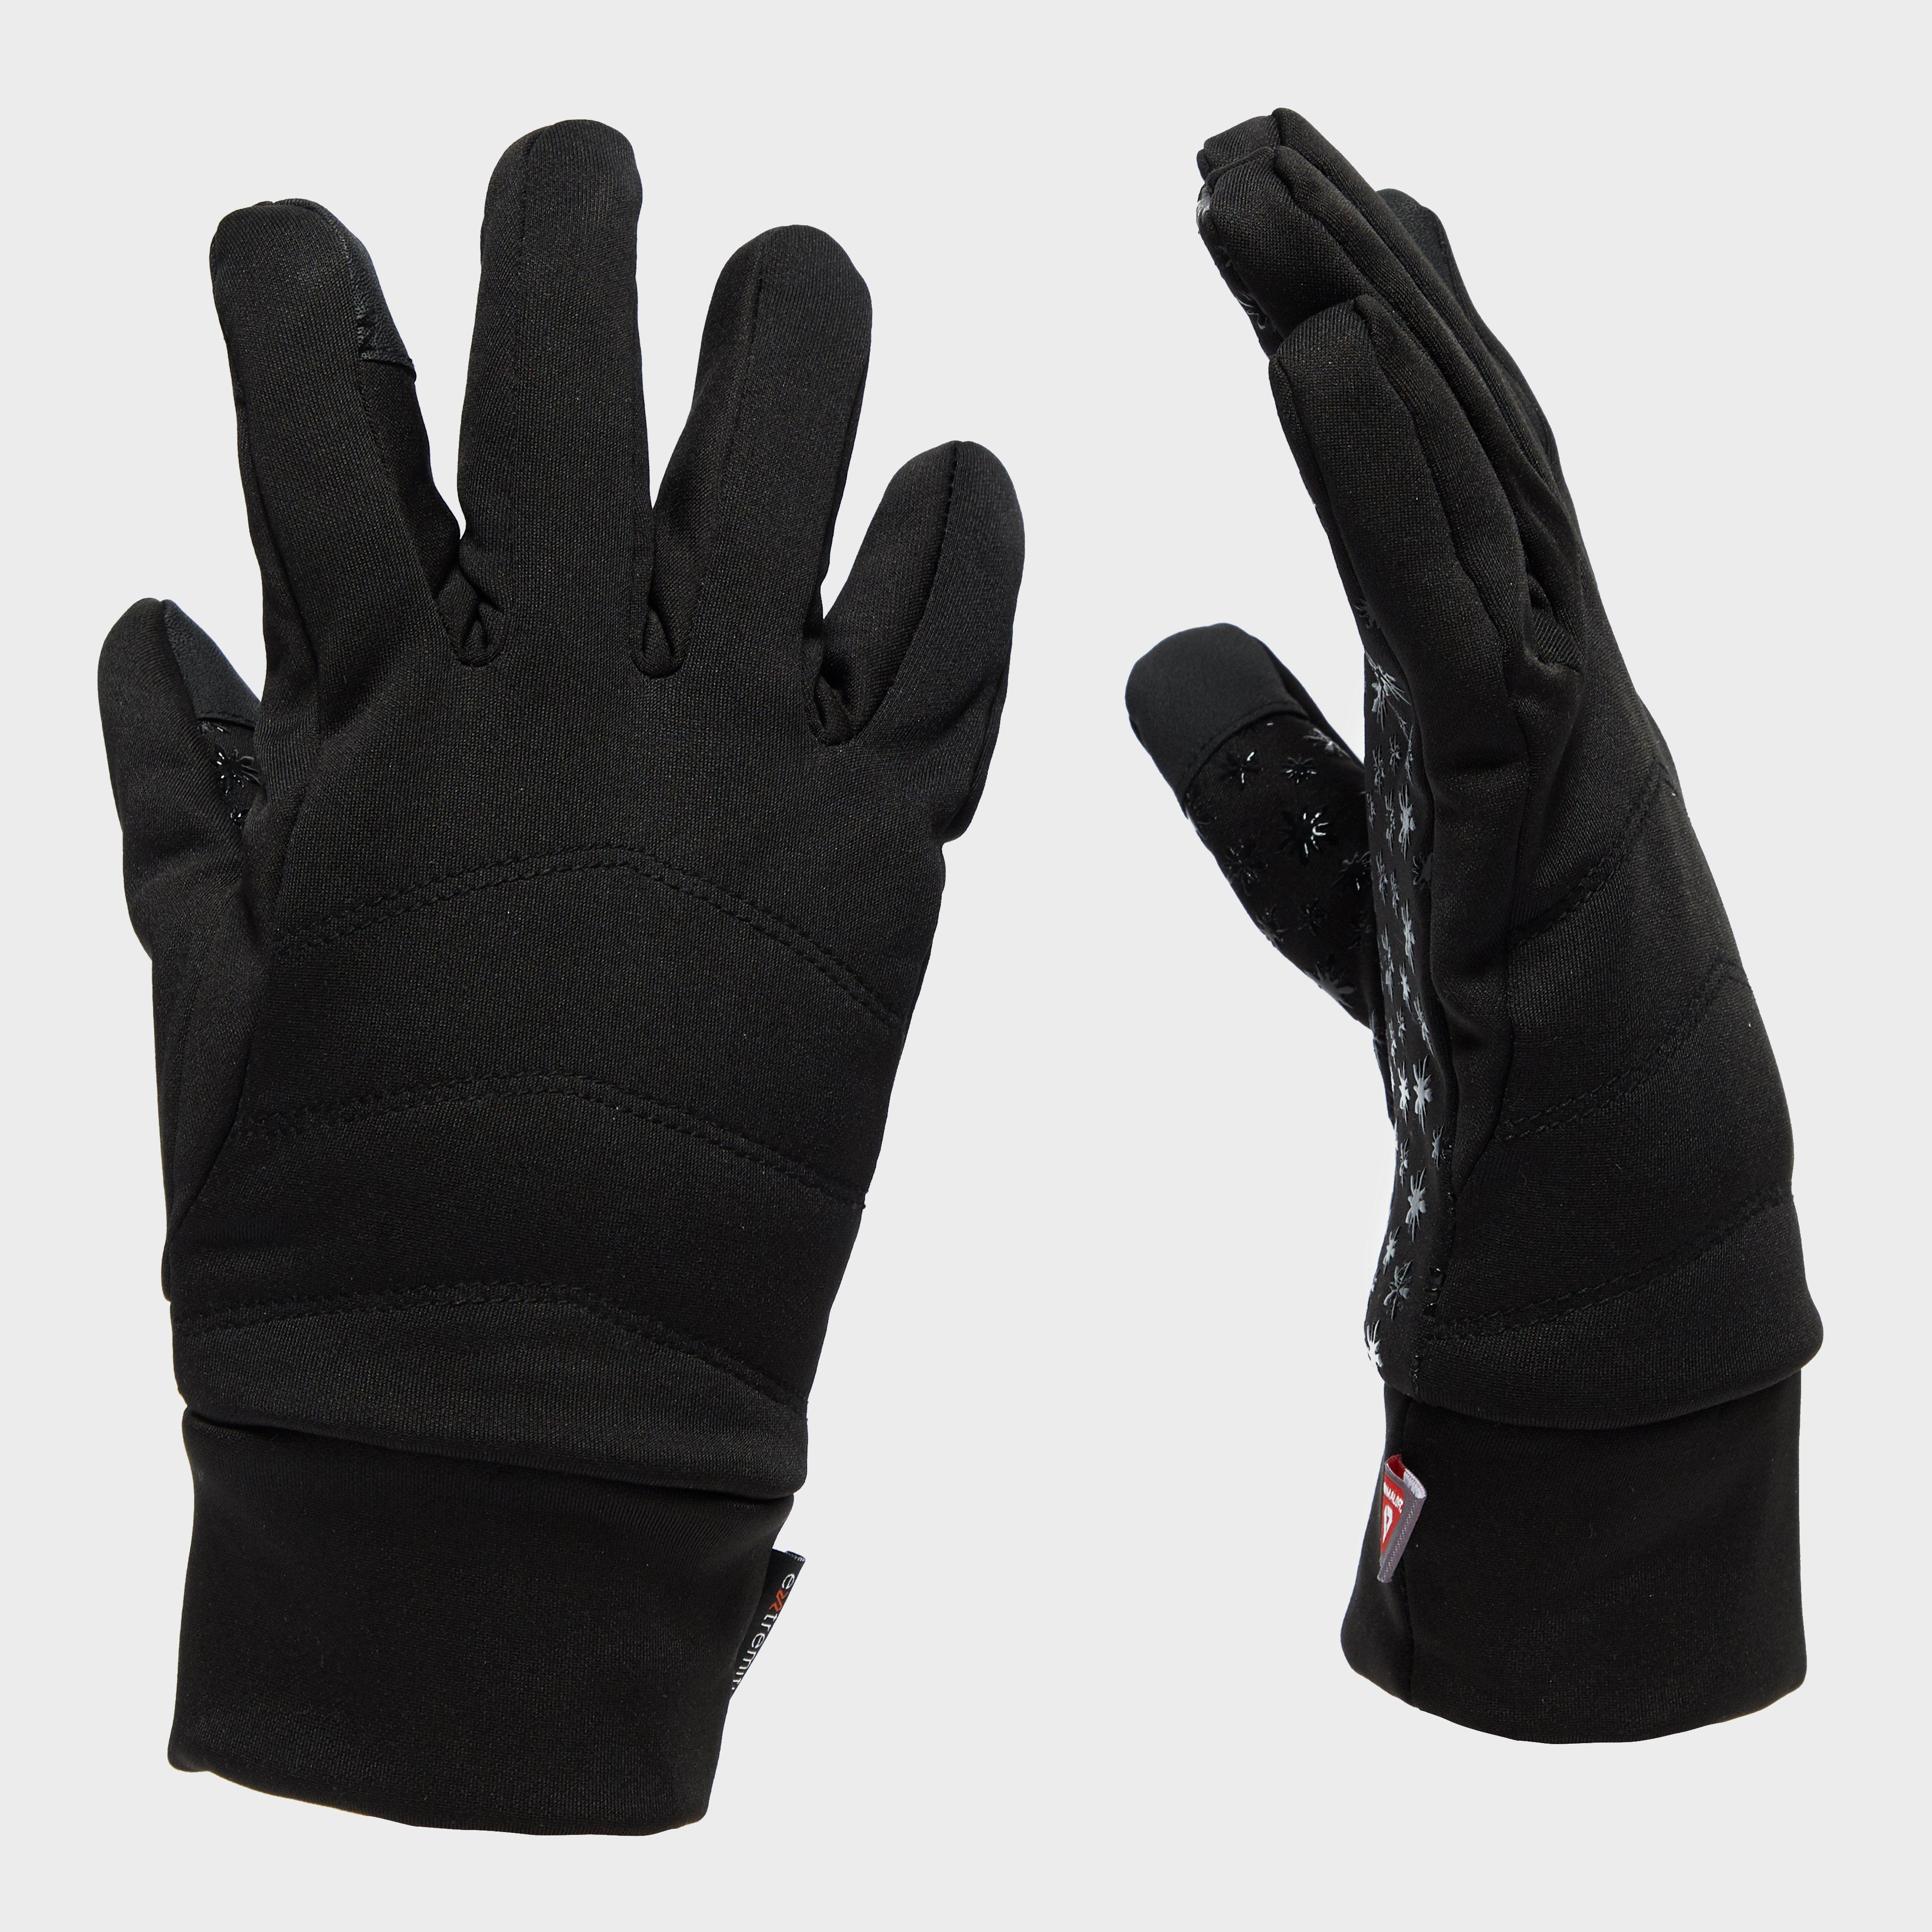 Extremities Extremities womens Super Thicky Gloves - Black, Black